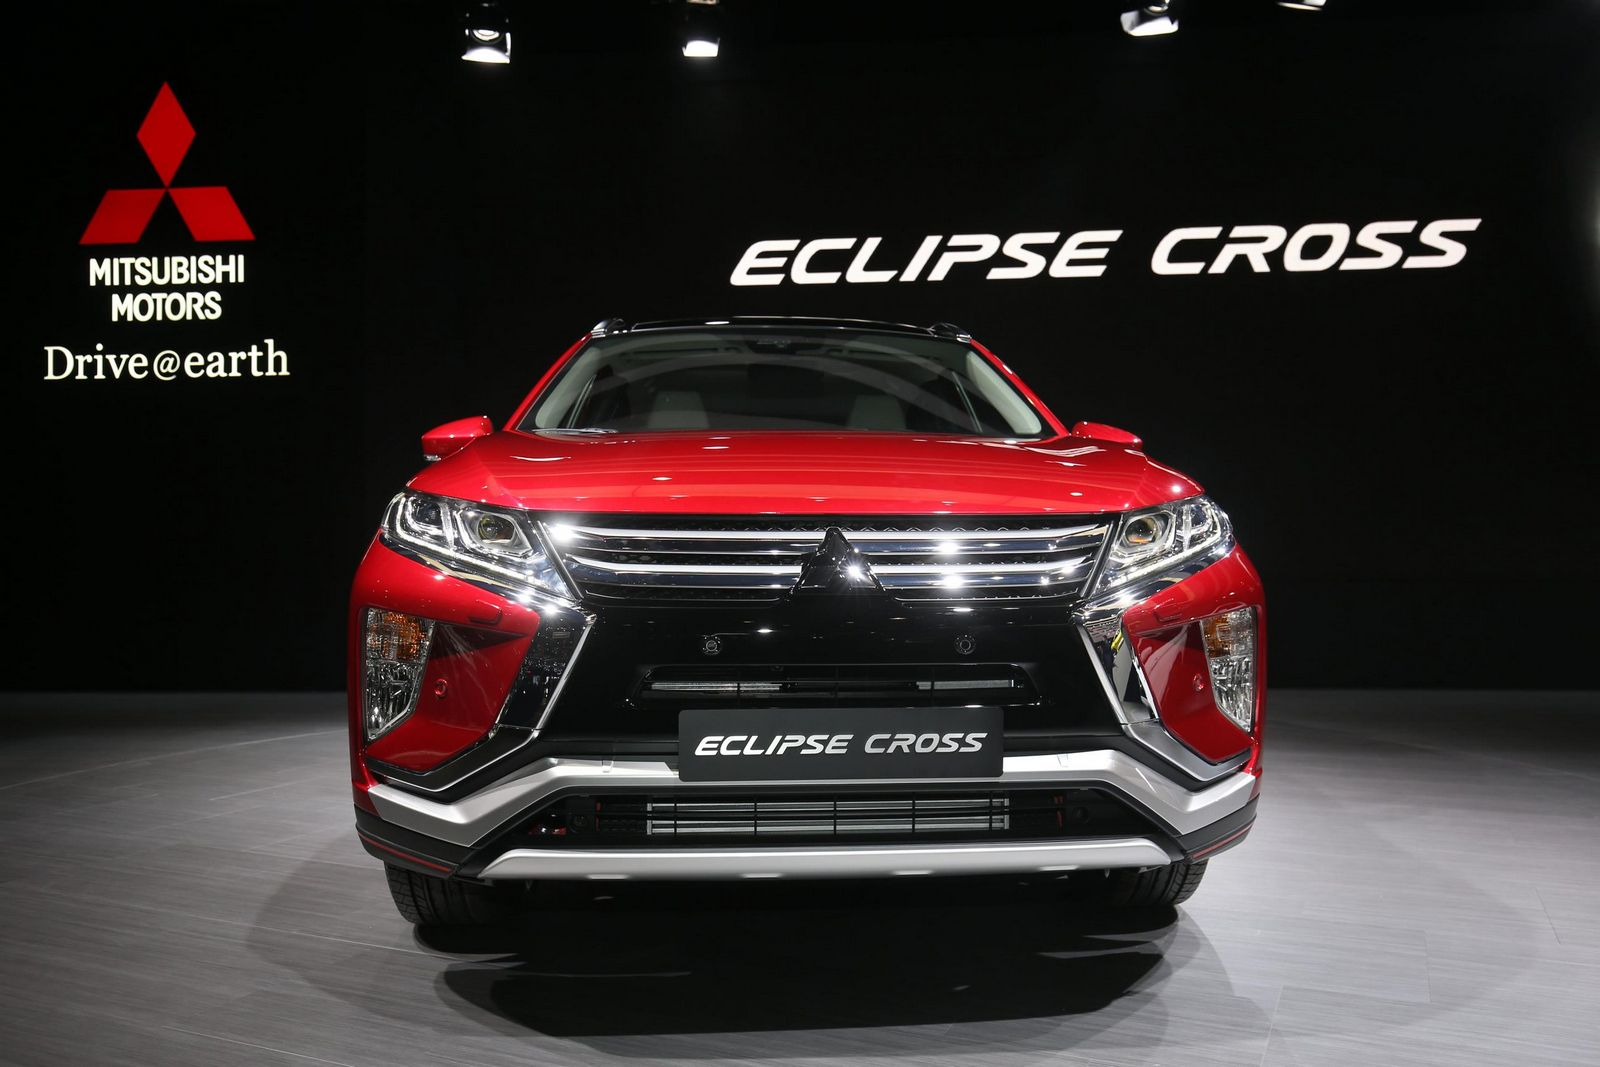 2018 Mitsubishi Eclipse Cross Brings Evo Tech To Geneva ...